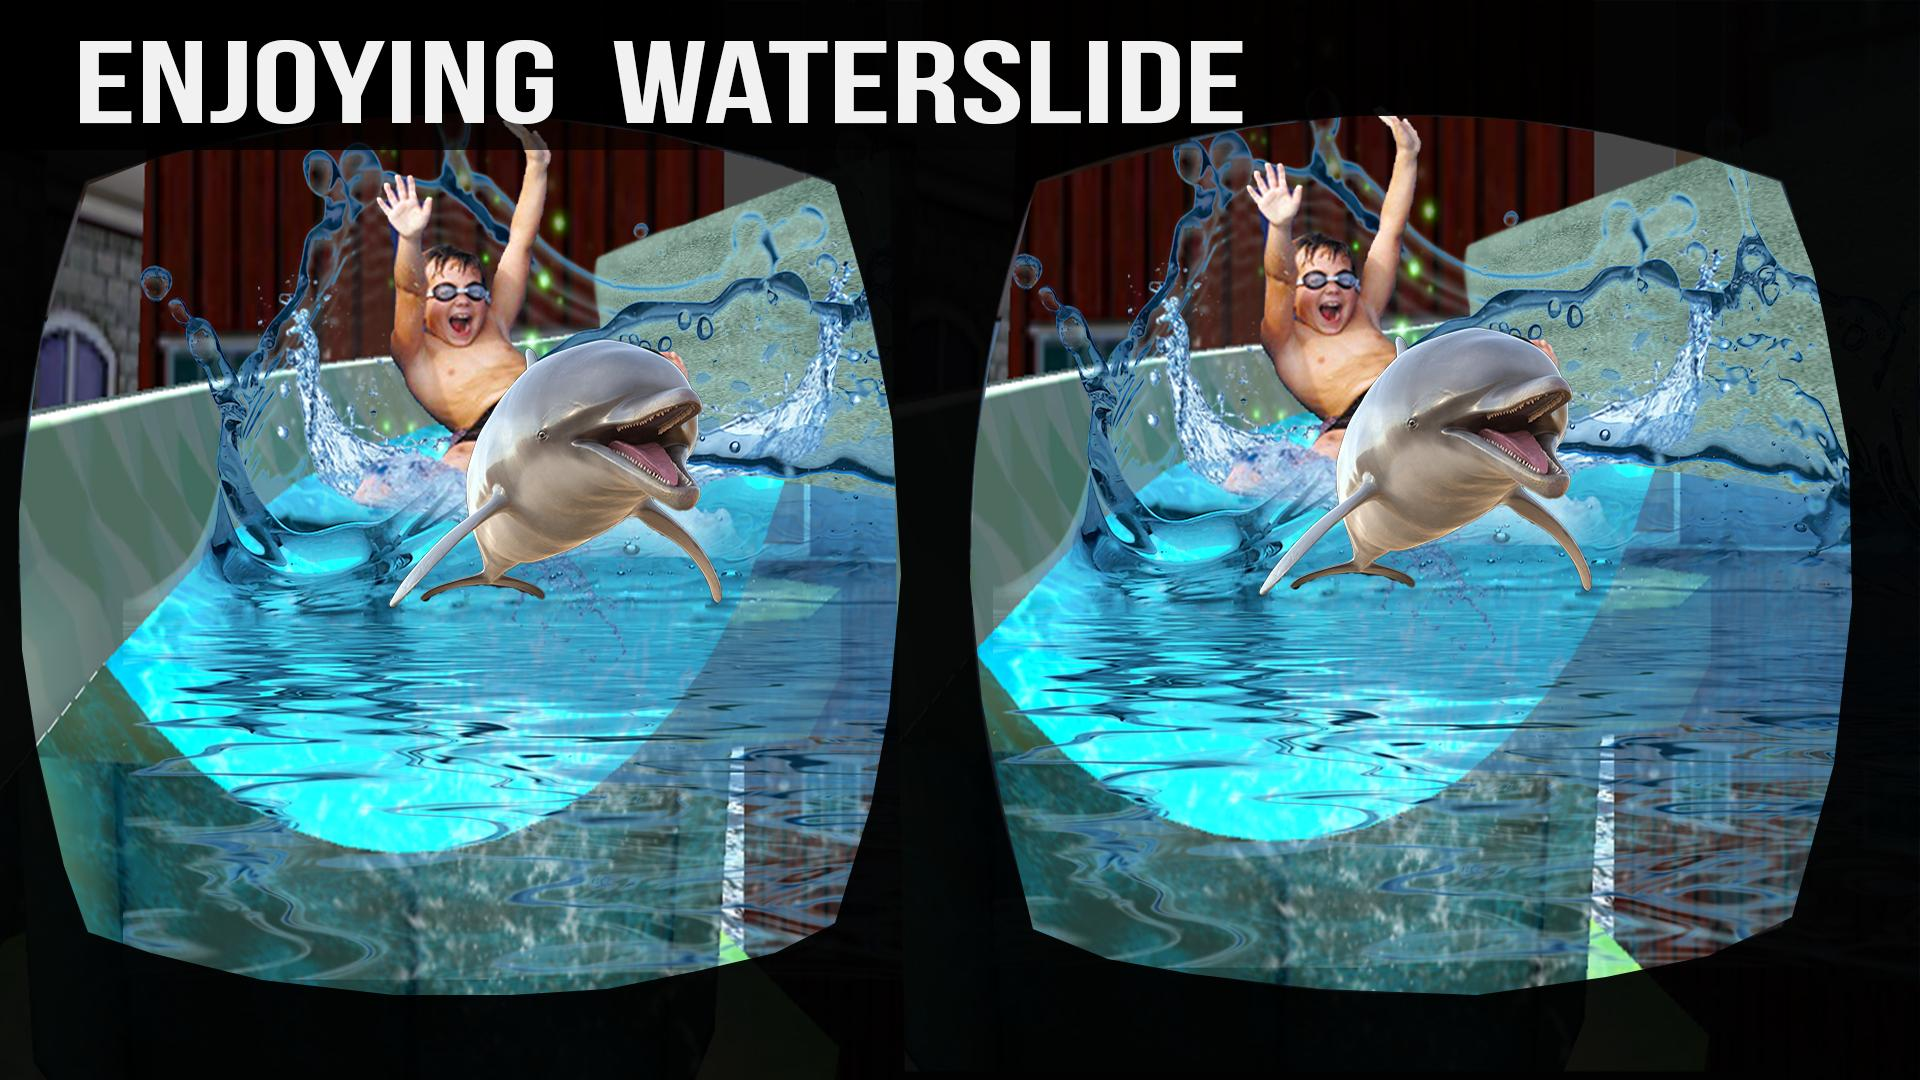 VR Water Slide Adventure-Dolphin Ride 3D for Android - APK